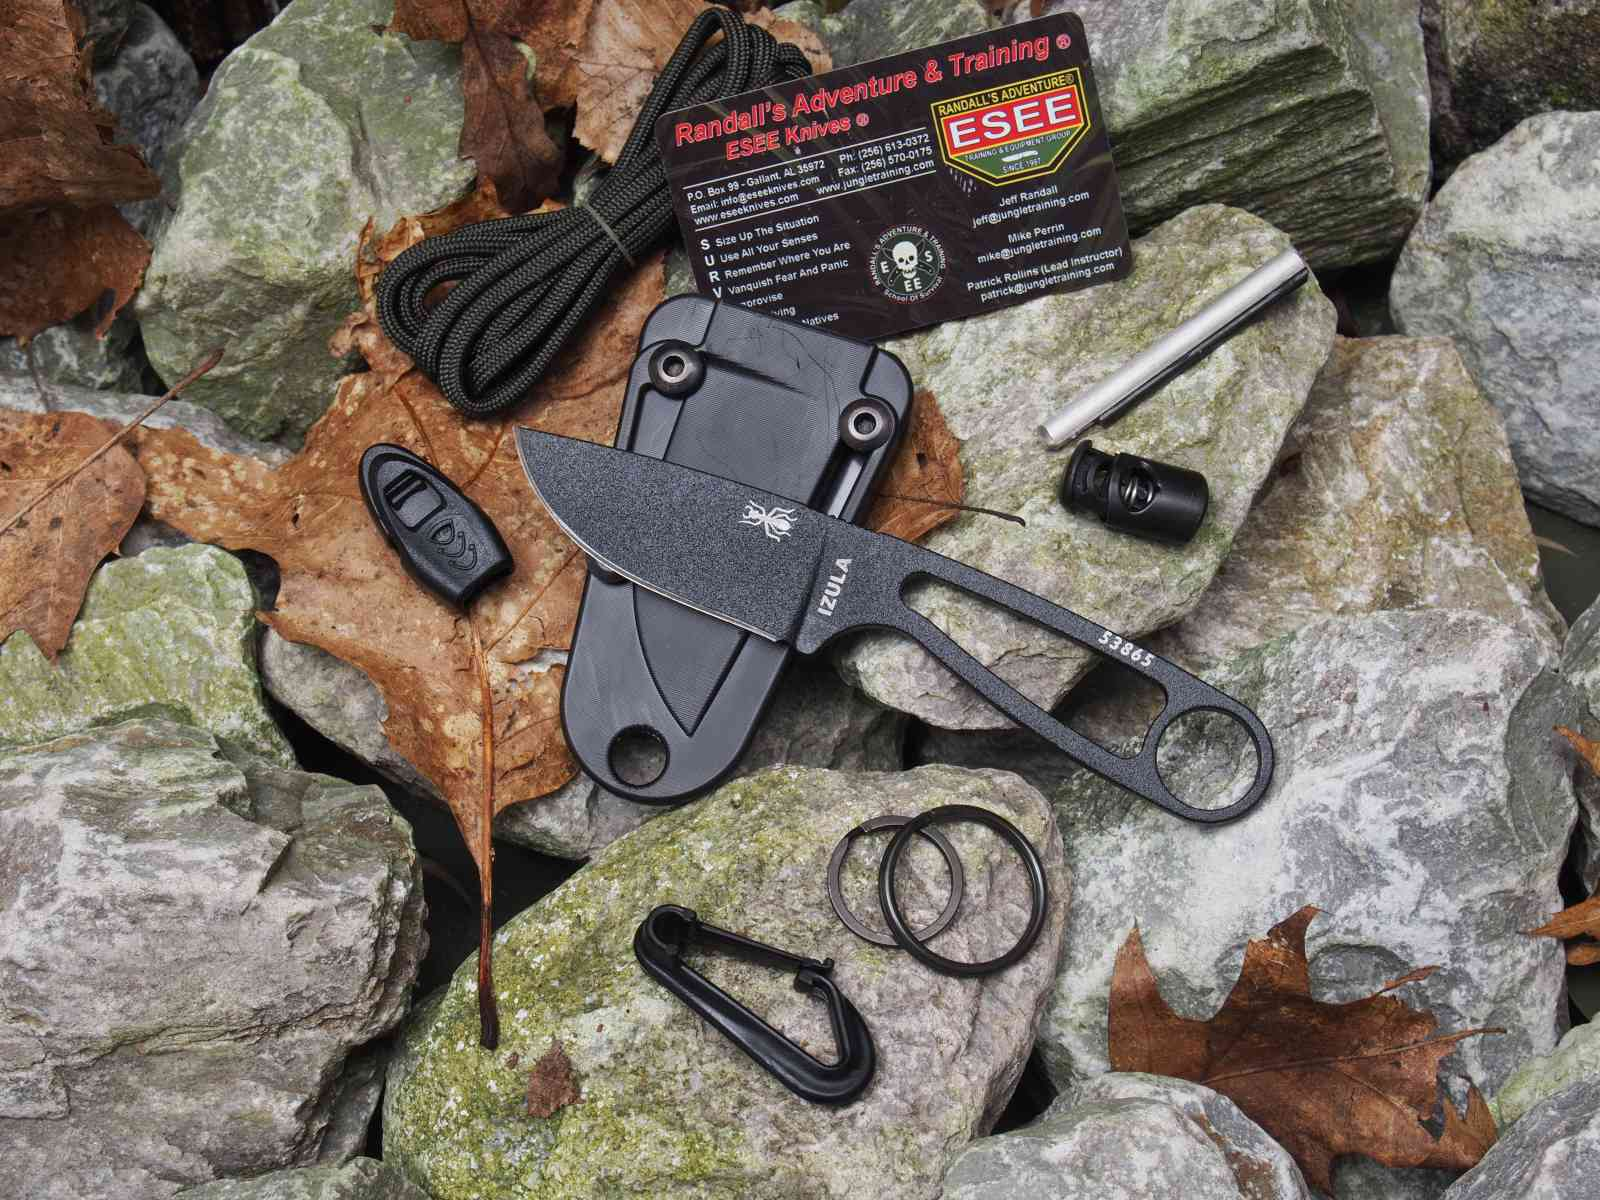 ESEE Izula mit Survival-Kit